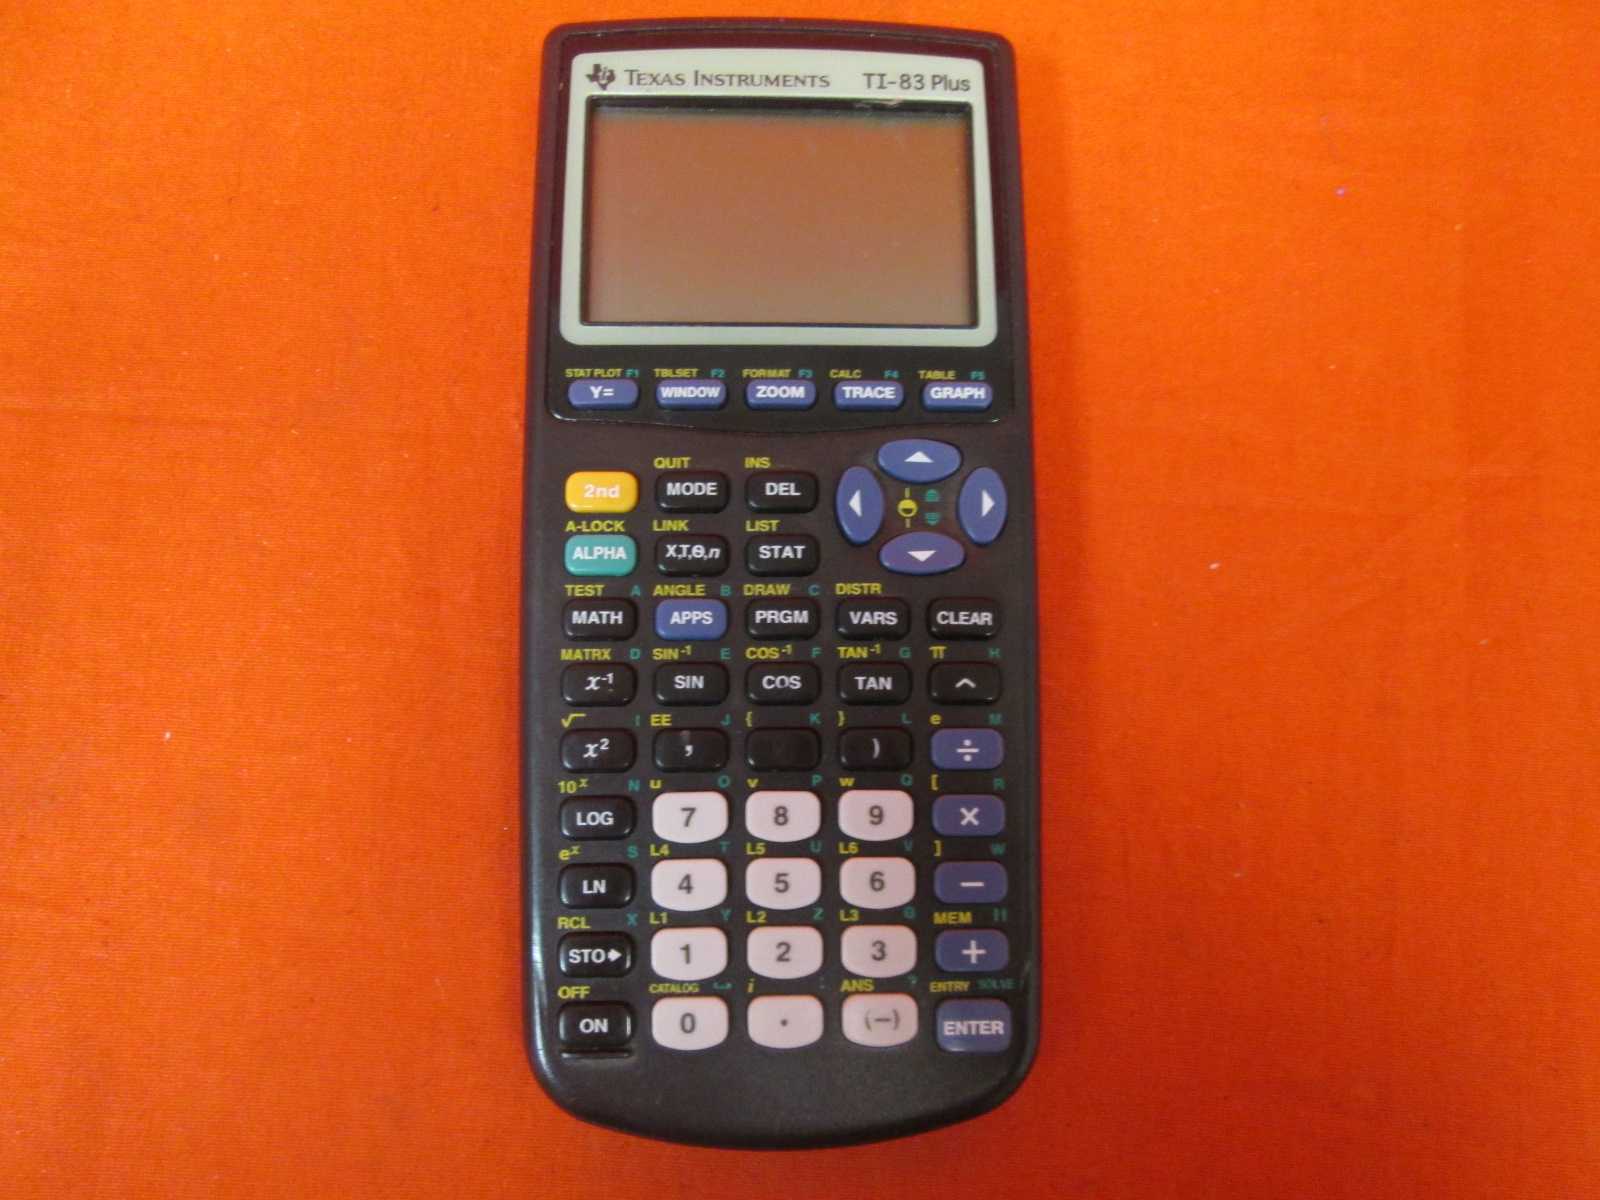 Texas Instruments TI-83 Plus Graphing Calculator Broken